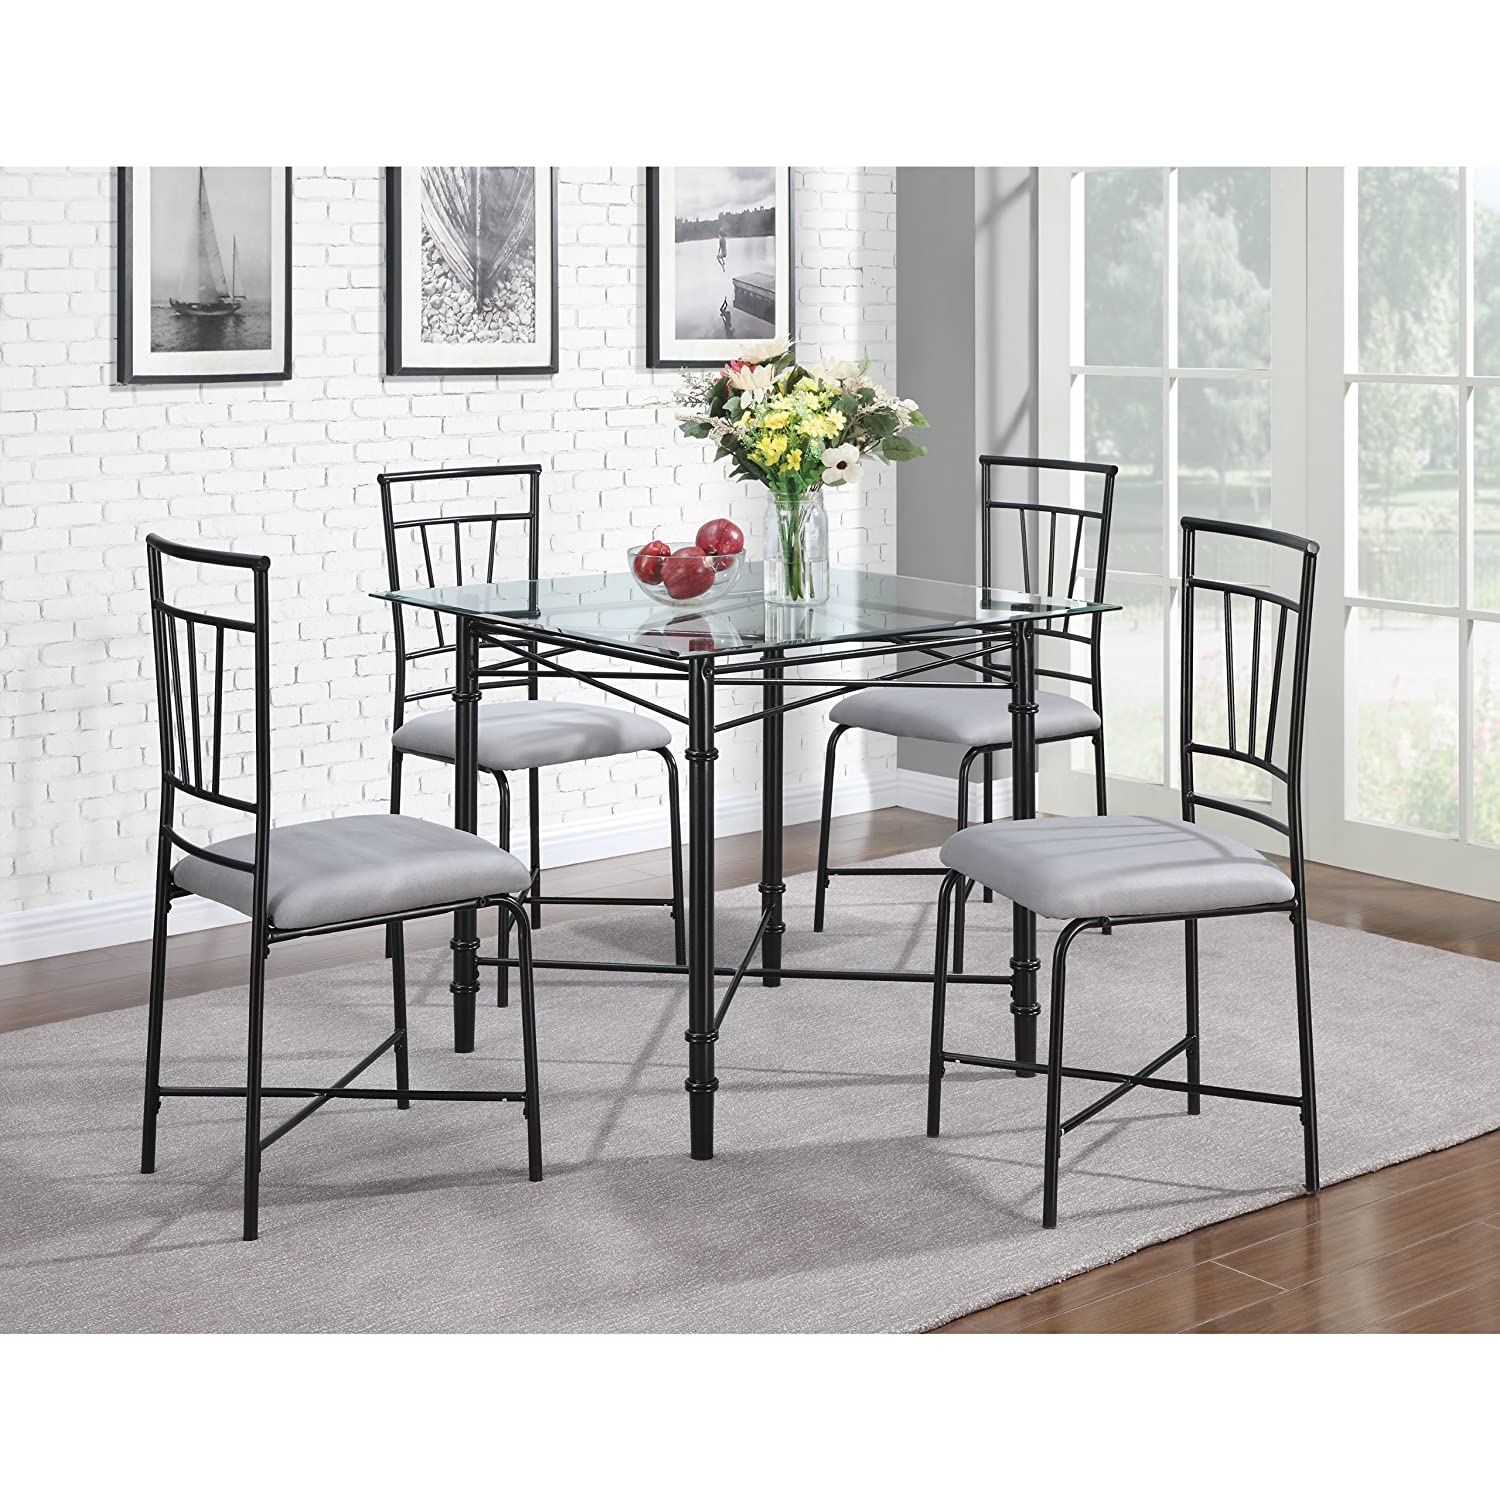 Amazon.com: Dorel Living 5-Piece Glass Top Metal Dining Set: Kitchen ...